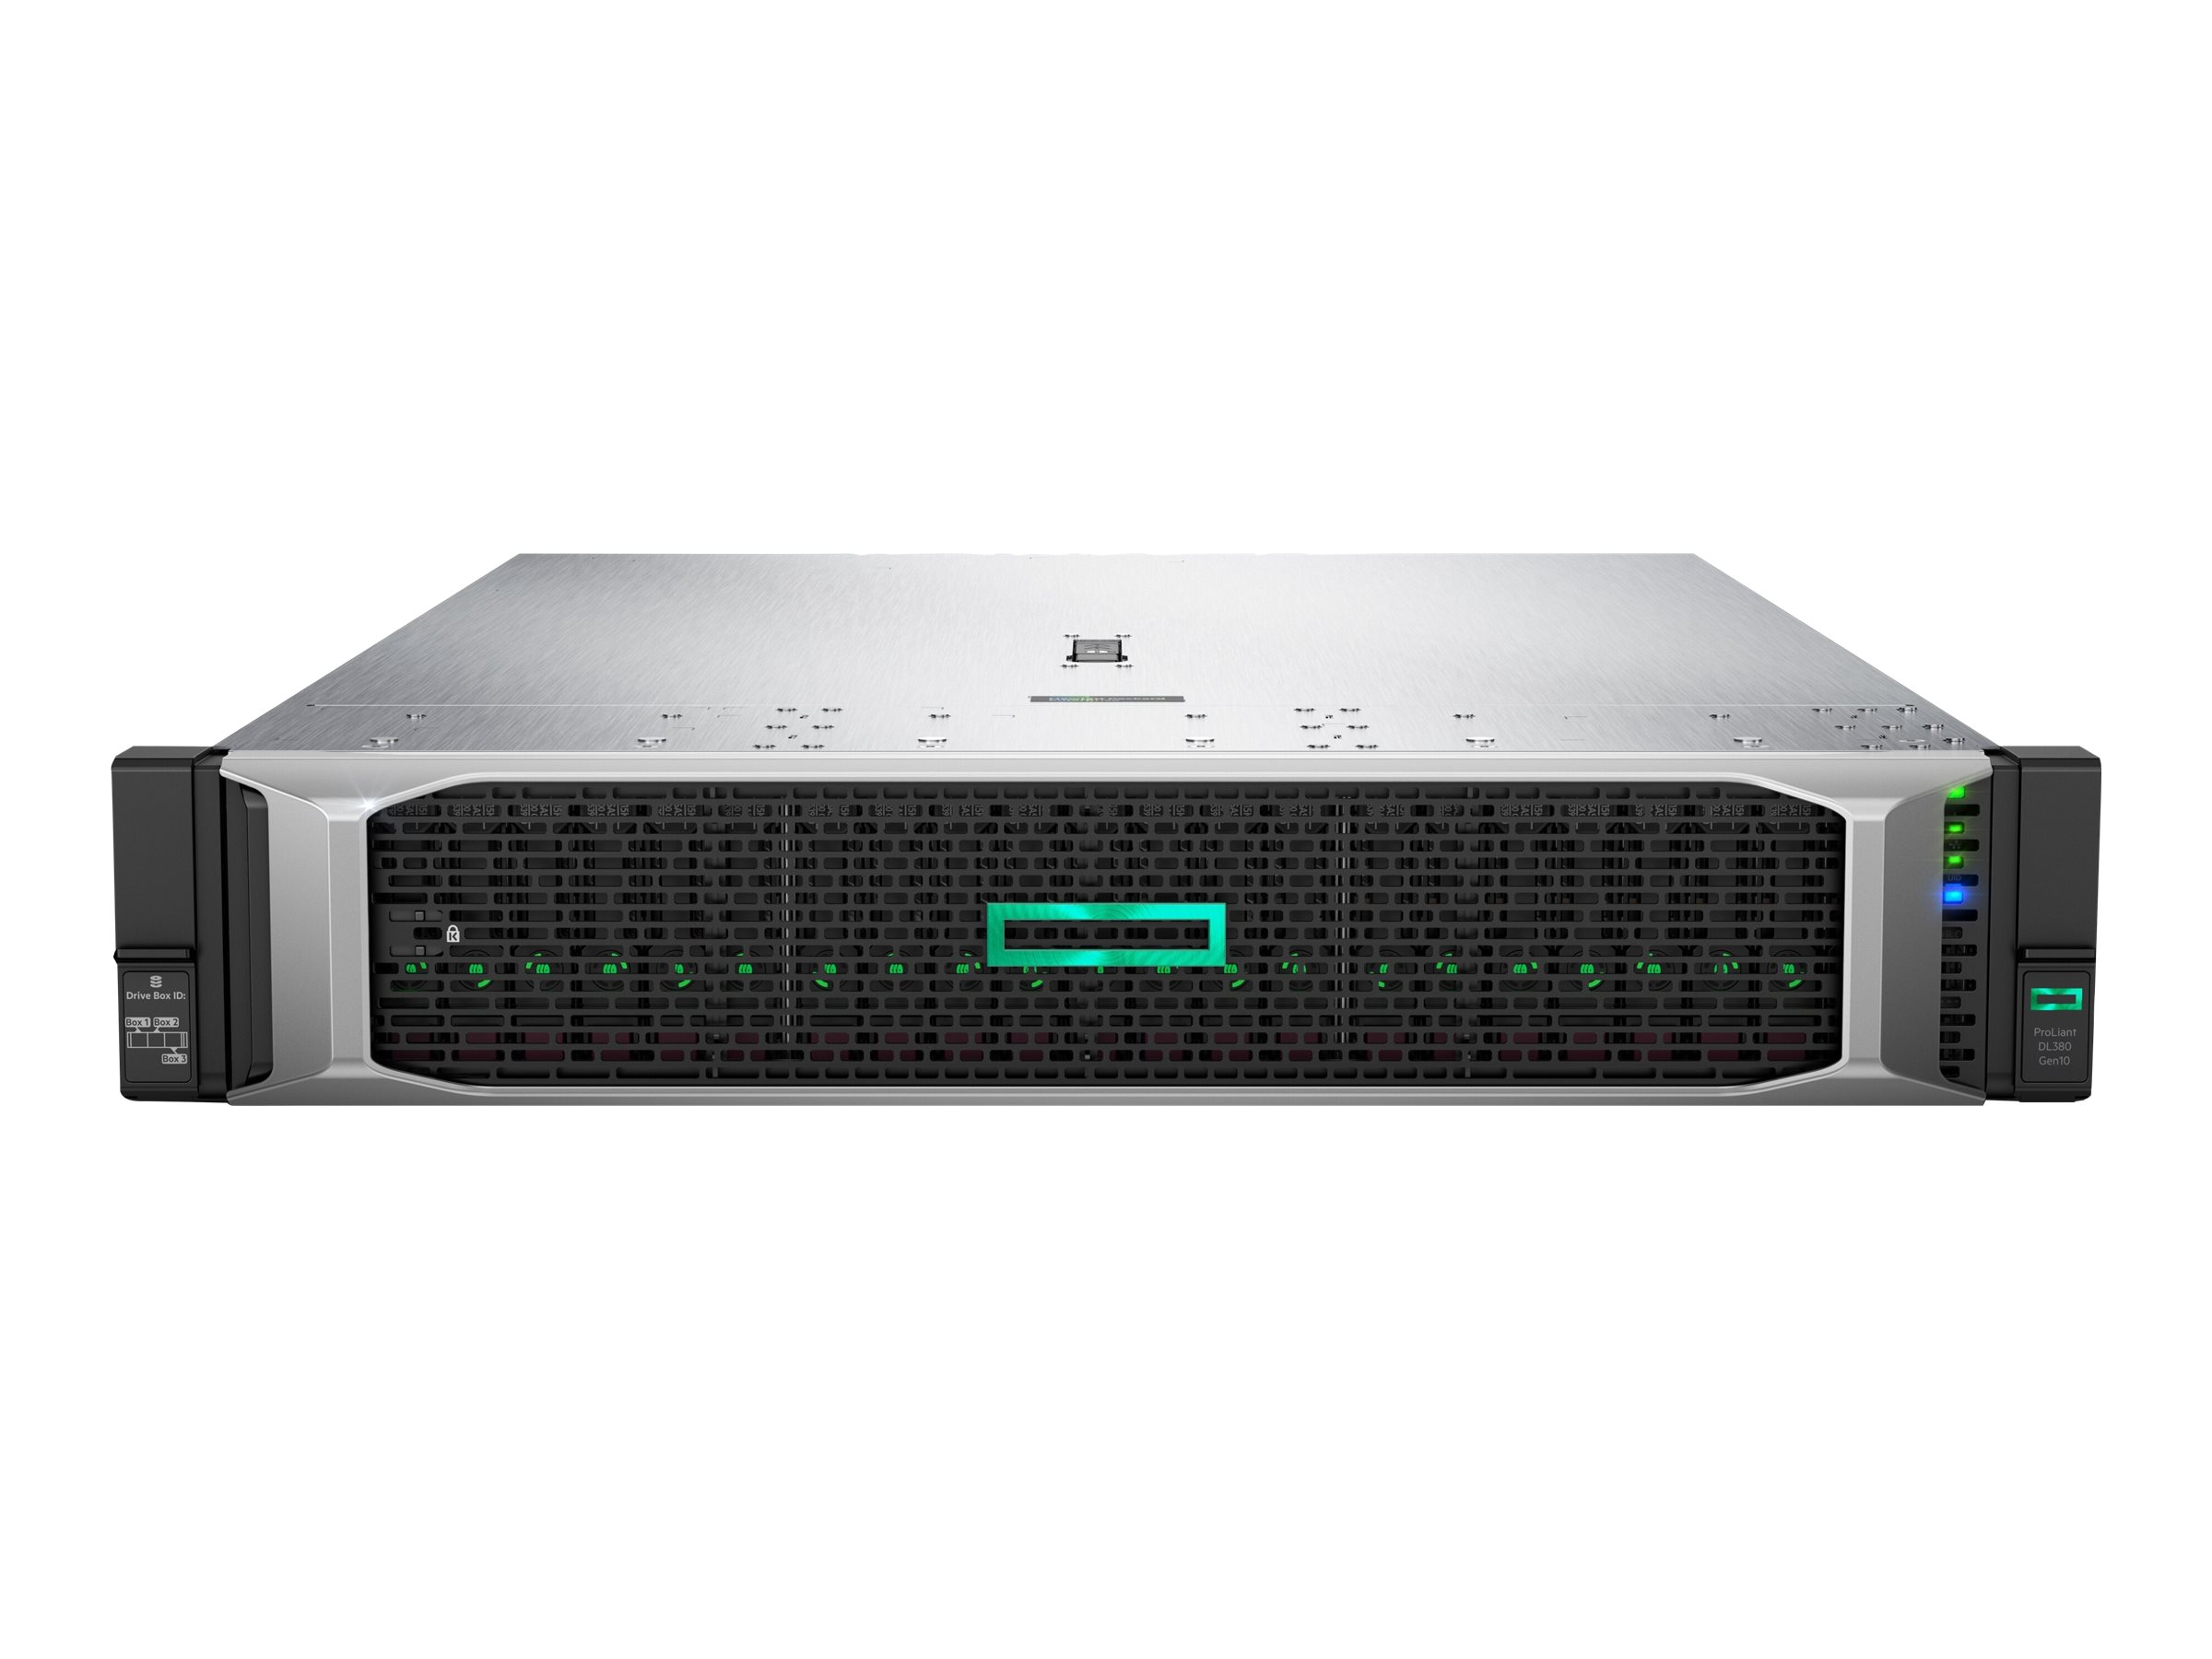 HPE ProLiant DL380 Gen10 All Flash Server for Datera - rack-mountable - Xeon Gold 6132 2.6 GHz - 384 GB - no HDD